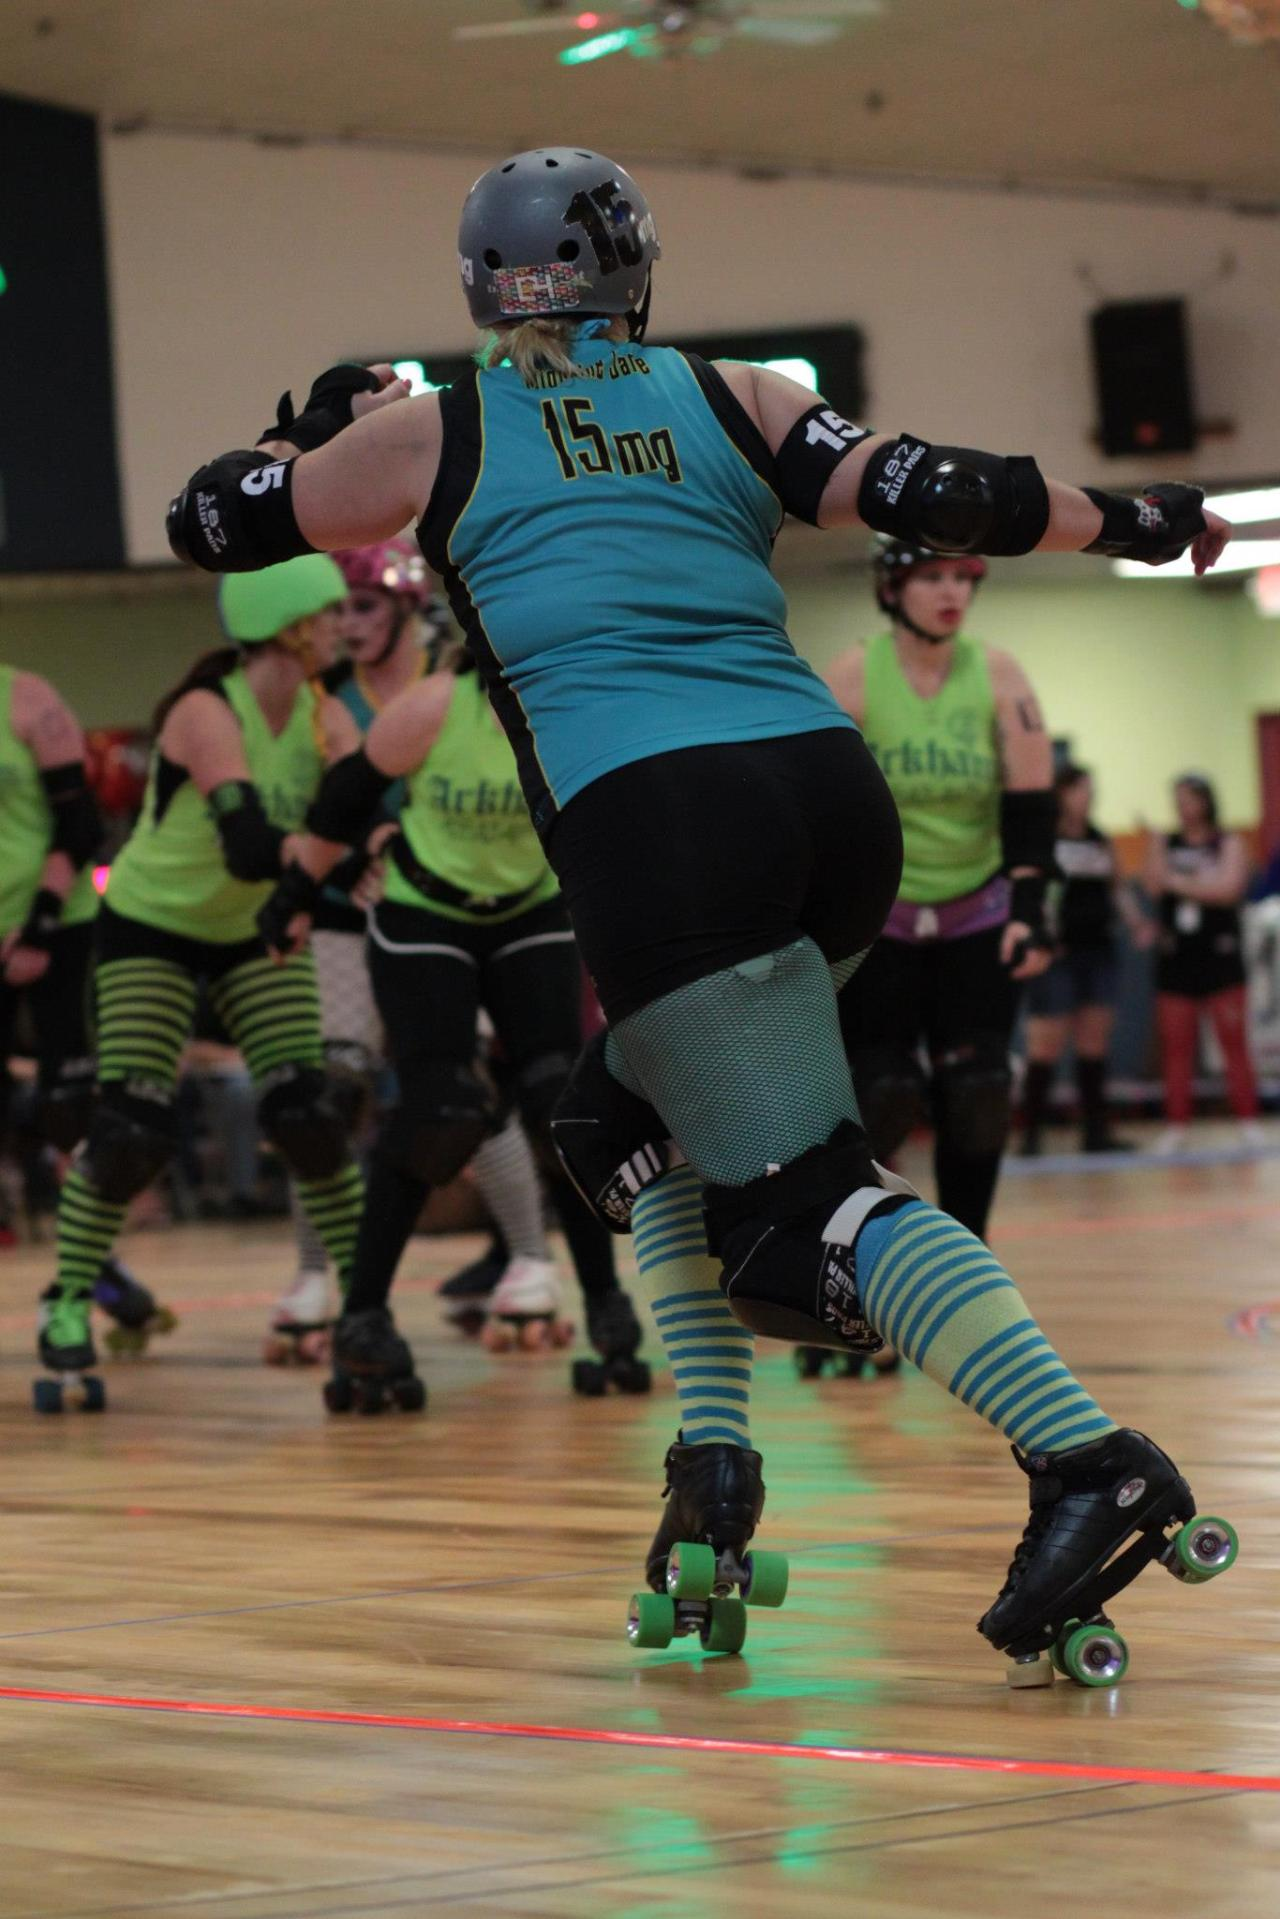 Migraine Jane #15mg at the Arkham Assailants vs Sunnyland Slammers bout. 2.10.13 Photo Credit: Canonball